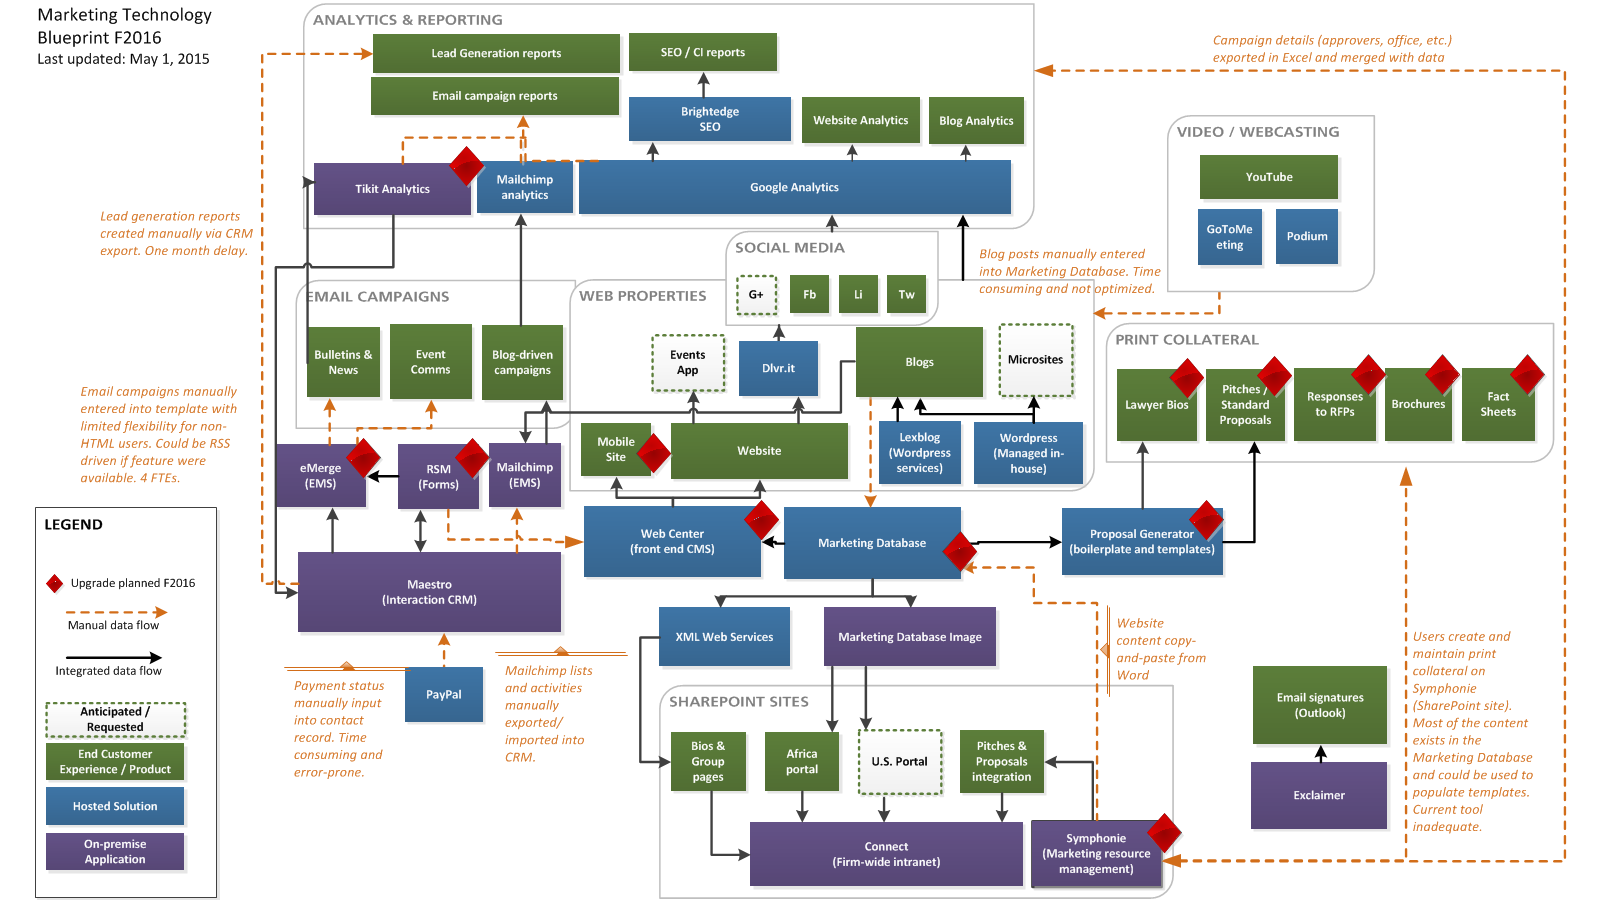 21 Marketing Technology Stacks Shared In The Stackies Chief Marketing Technologist Marketing Technology Marketing Innovation Marketing Software